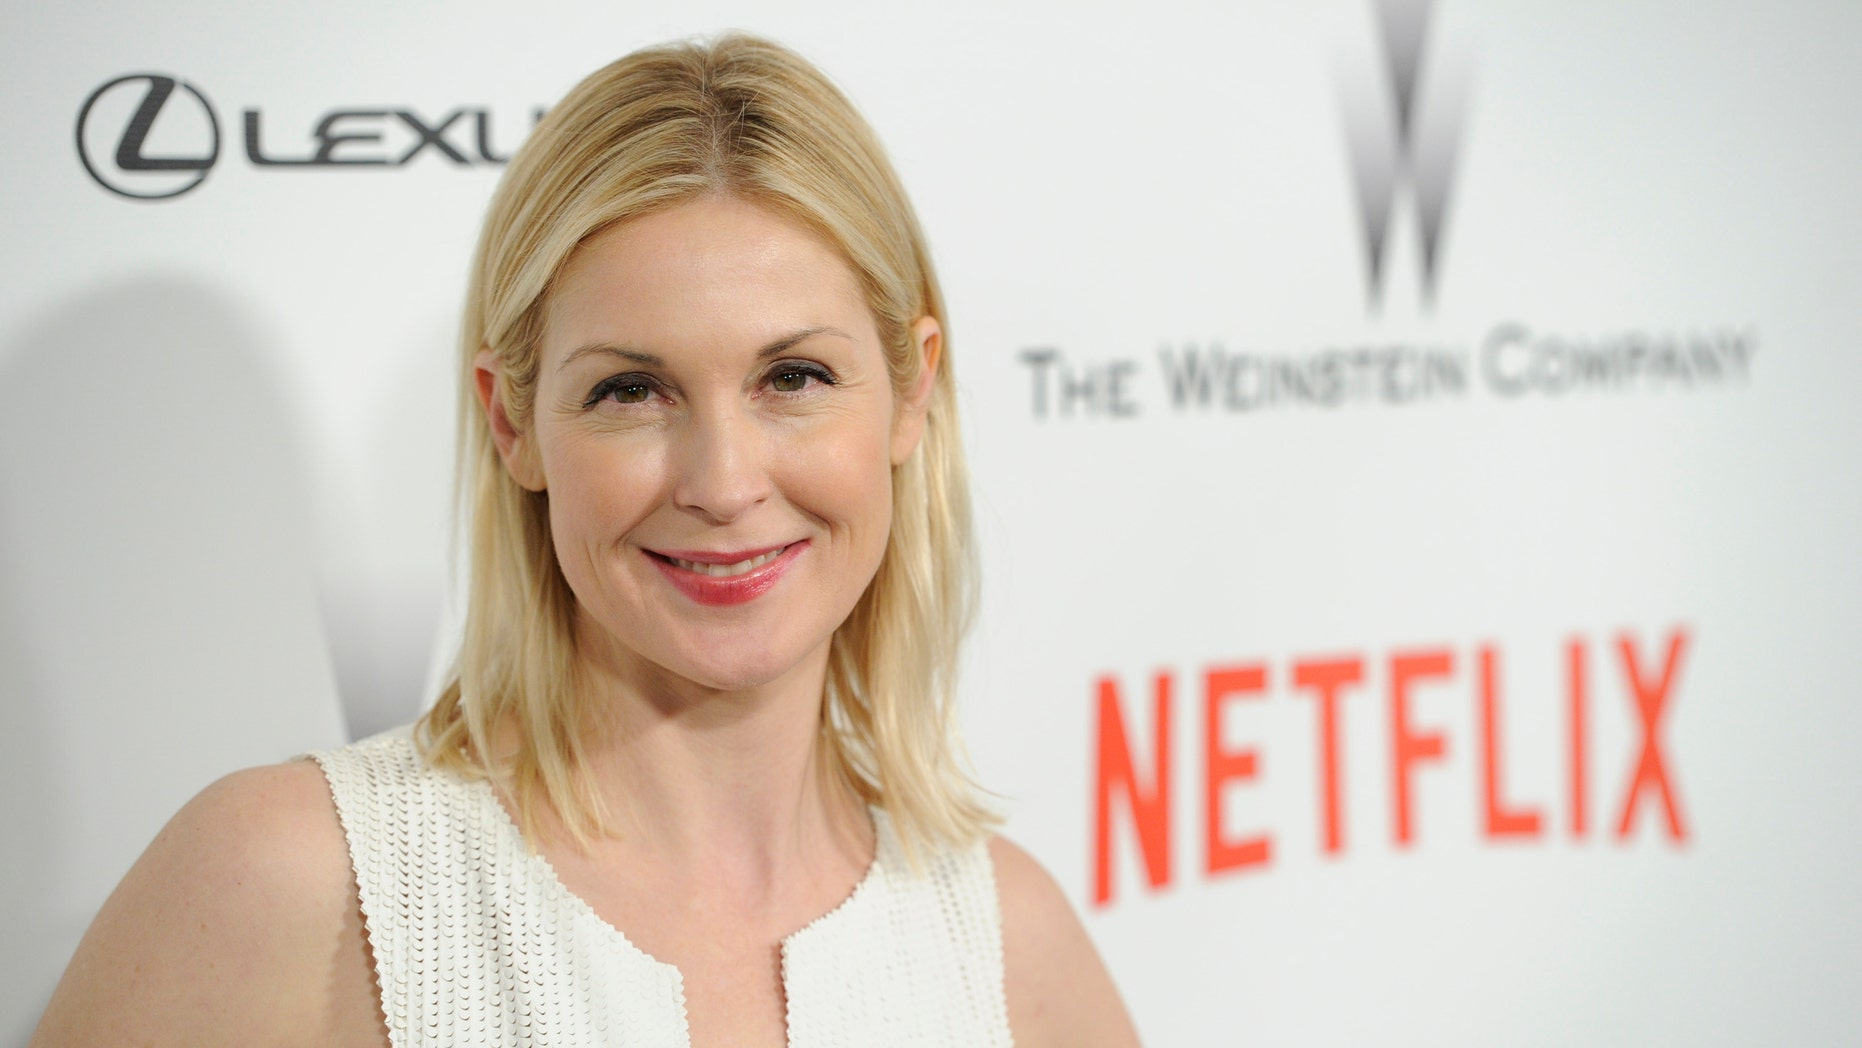 Jan. 11, 2015. Kelly Rutherford arrives at The Weinstein Company and Netflix Golden Globes afterparty at the Beverly Hilton Hotel in Beverly Hills, Calif.